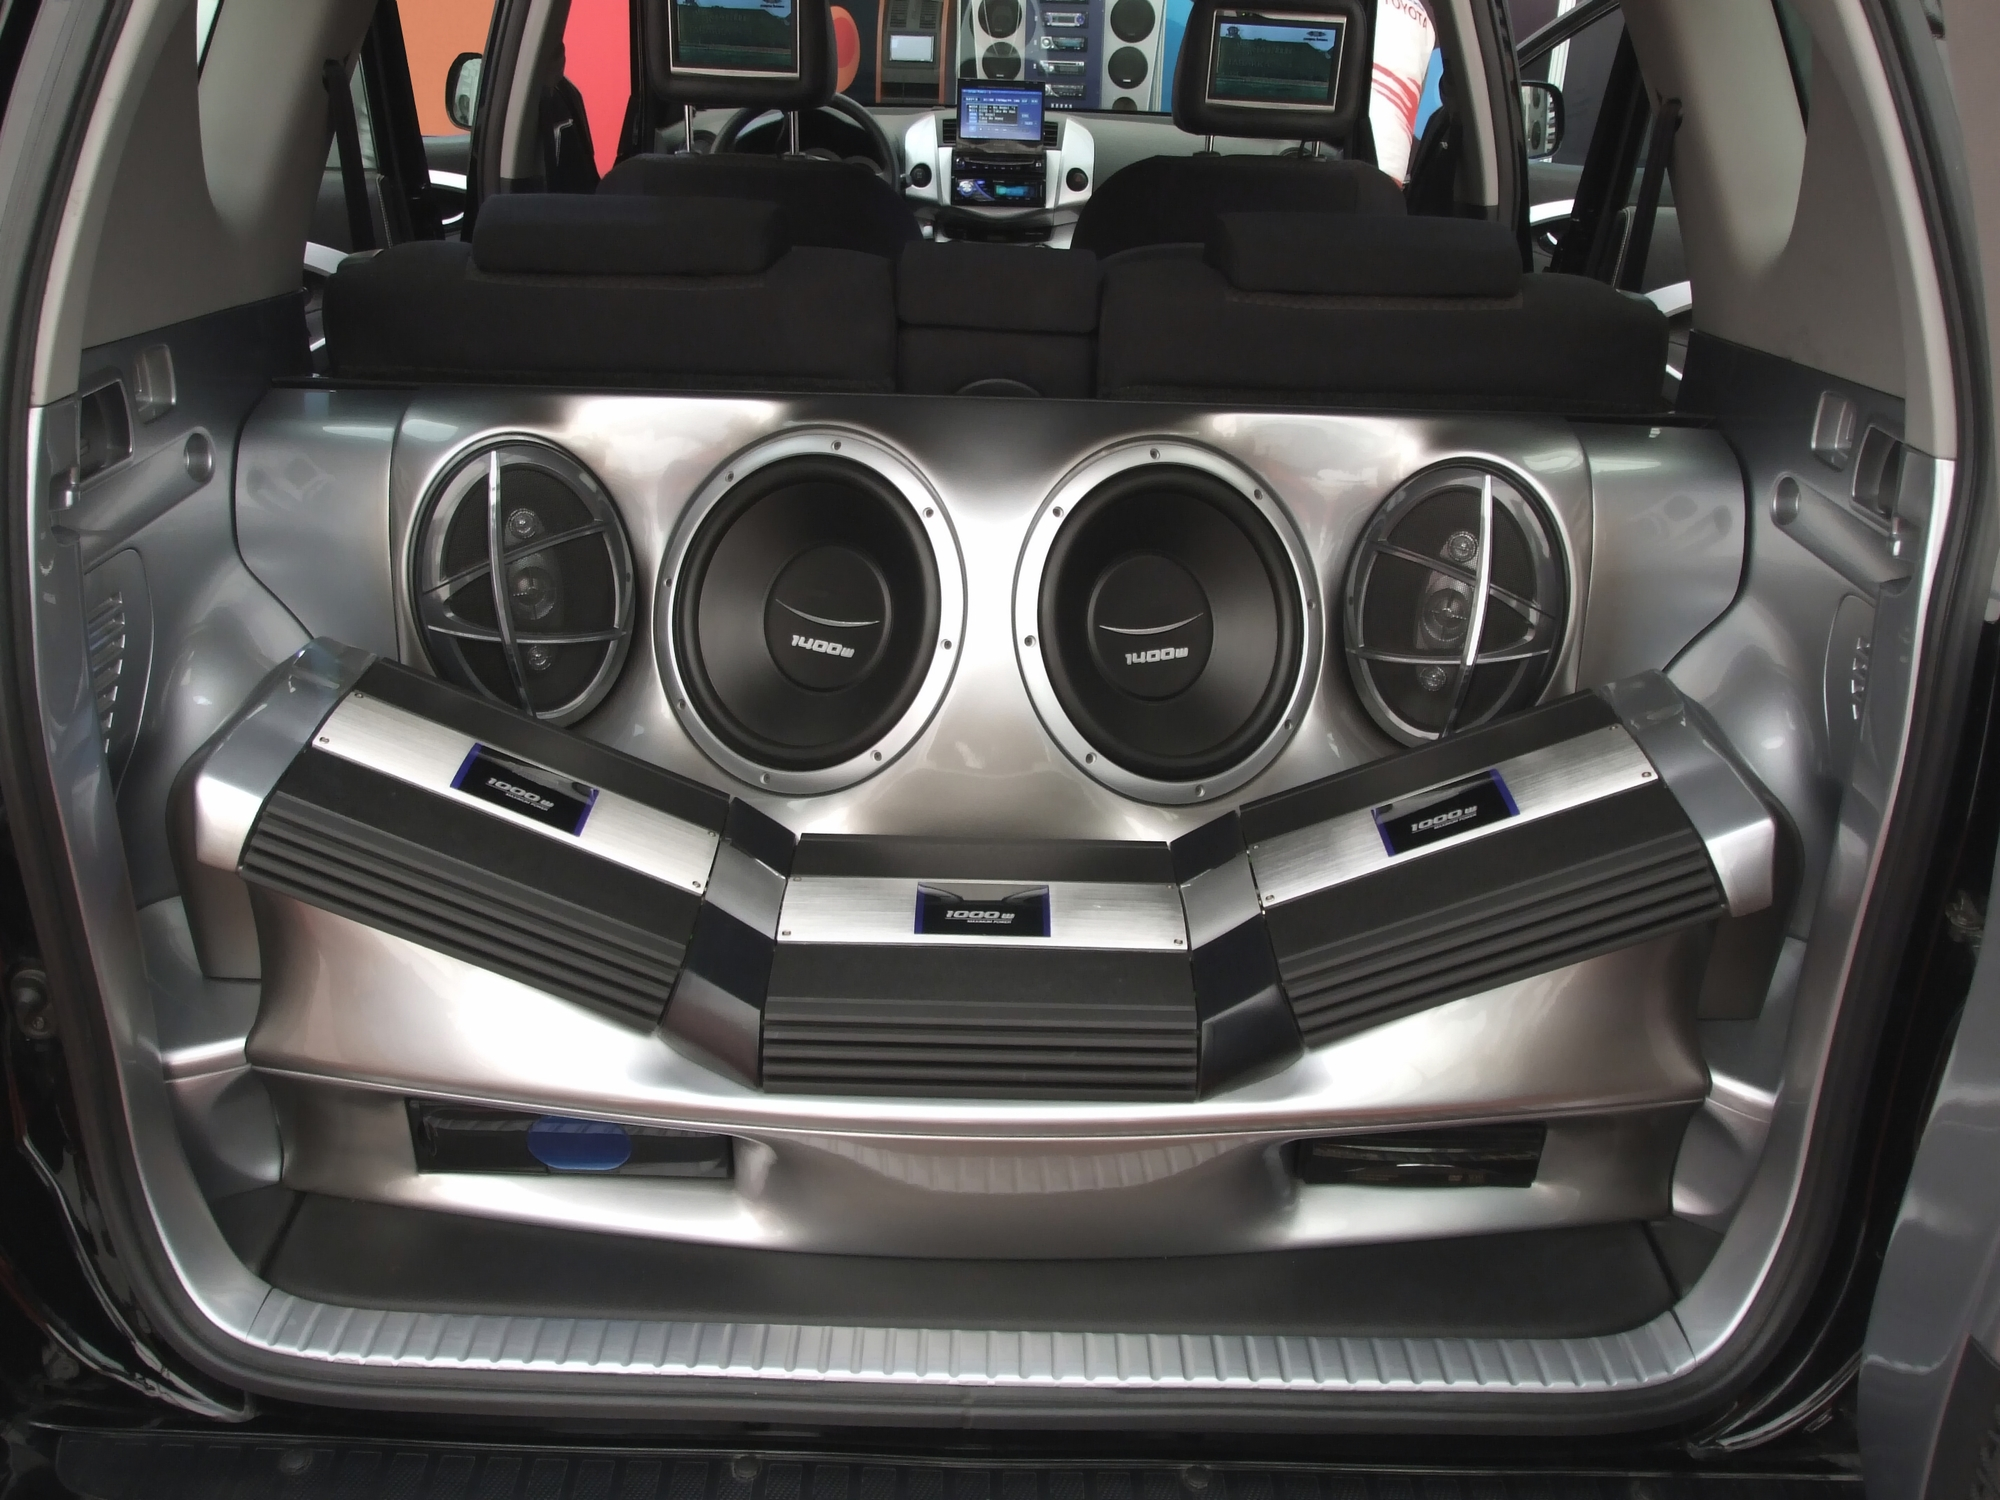 4 Reasons To Have Your Car Audio System Professionally Installed